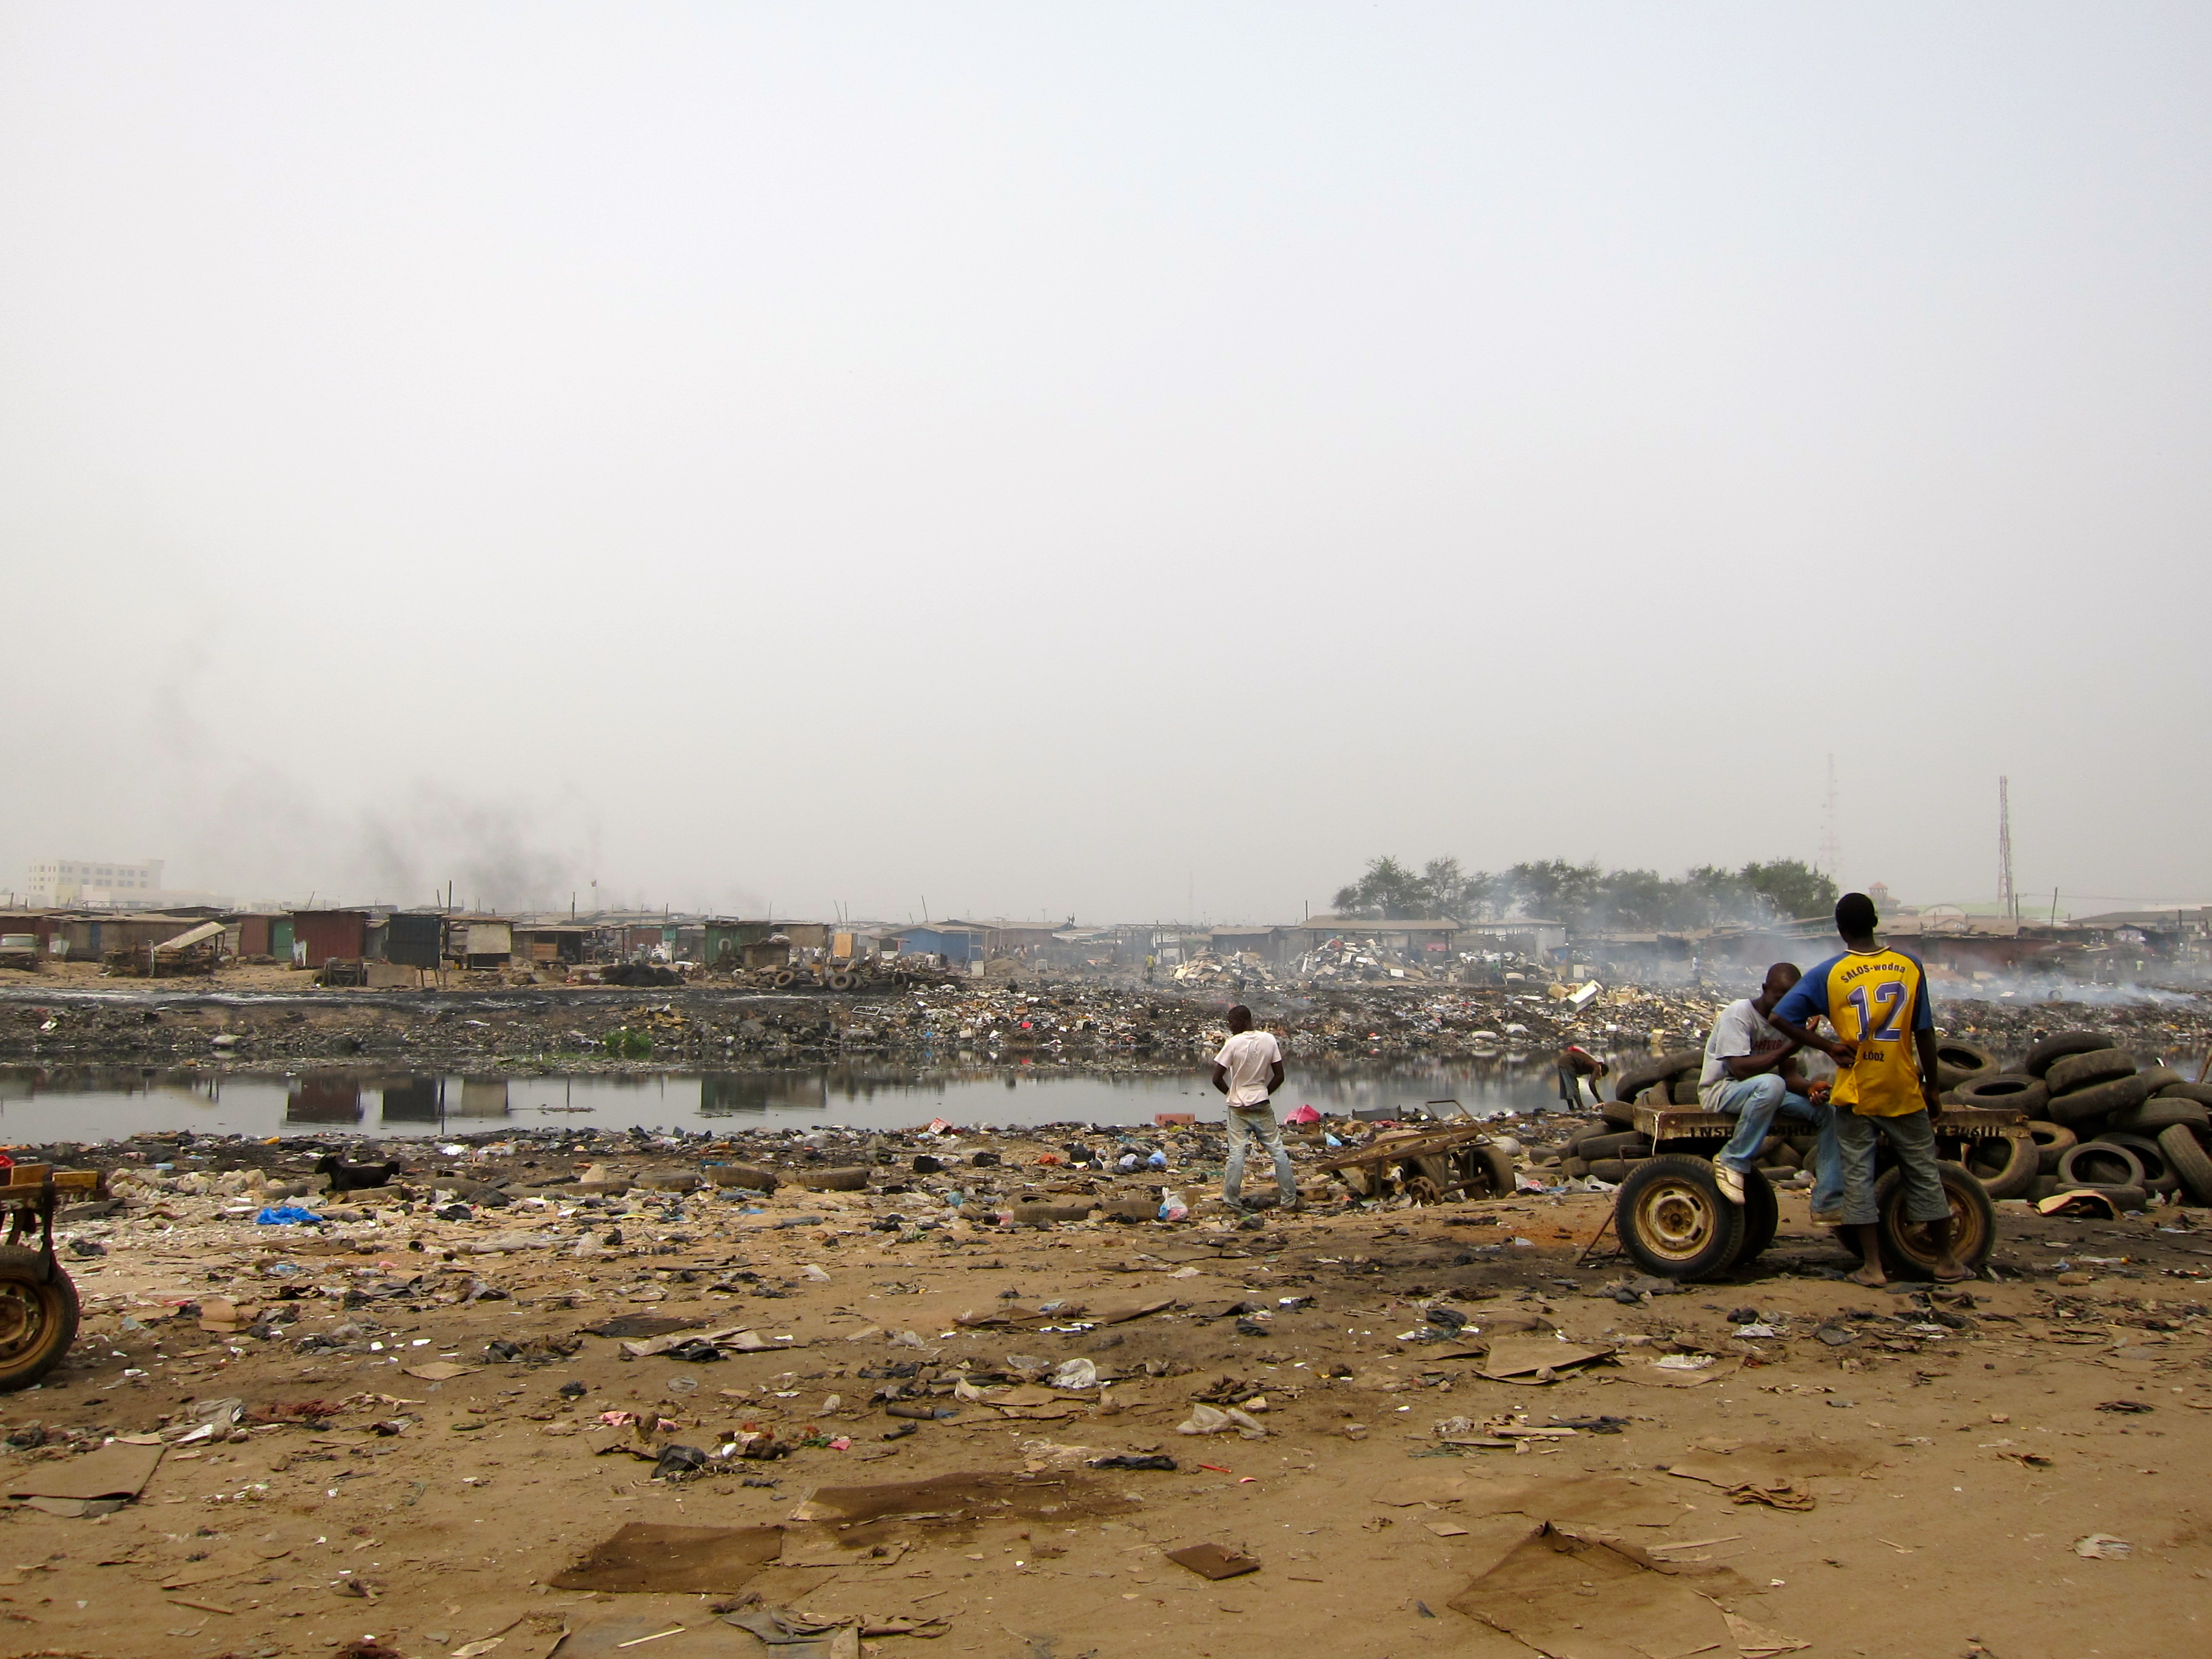 Polluted Korle Lagoon, Old Fadama by Slum Dwellers International via flickr, CC BY 2.0. This picture shows some of the environmental challenges faced by Old Fadama. However, it does not show a justification to forcefully evict residents – rather, it would be worthwile to encourage them to partipate in cleaning efforts.